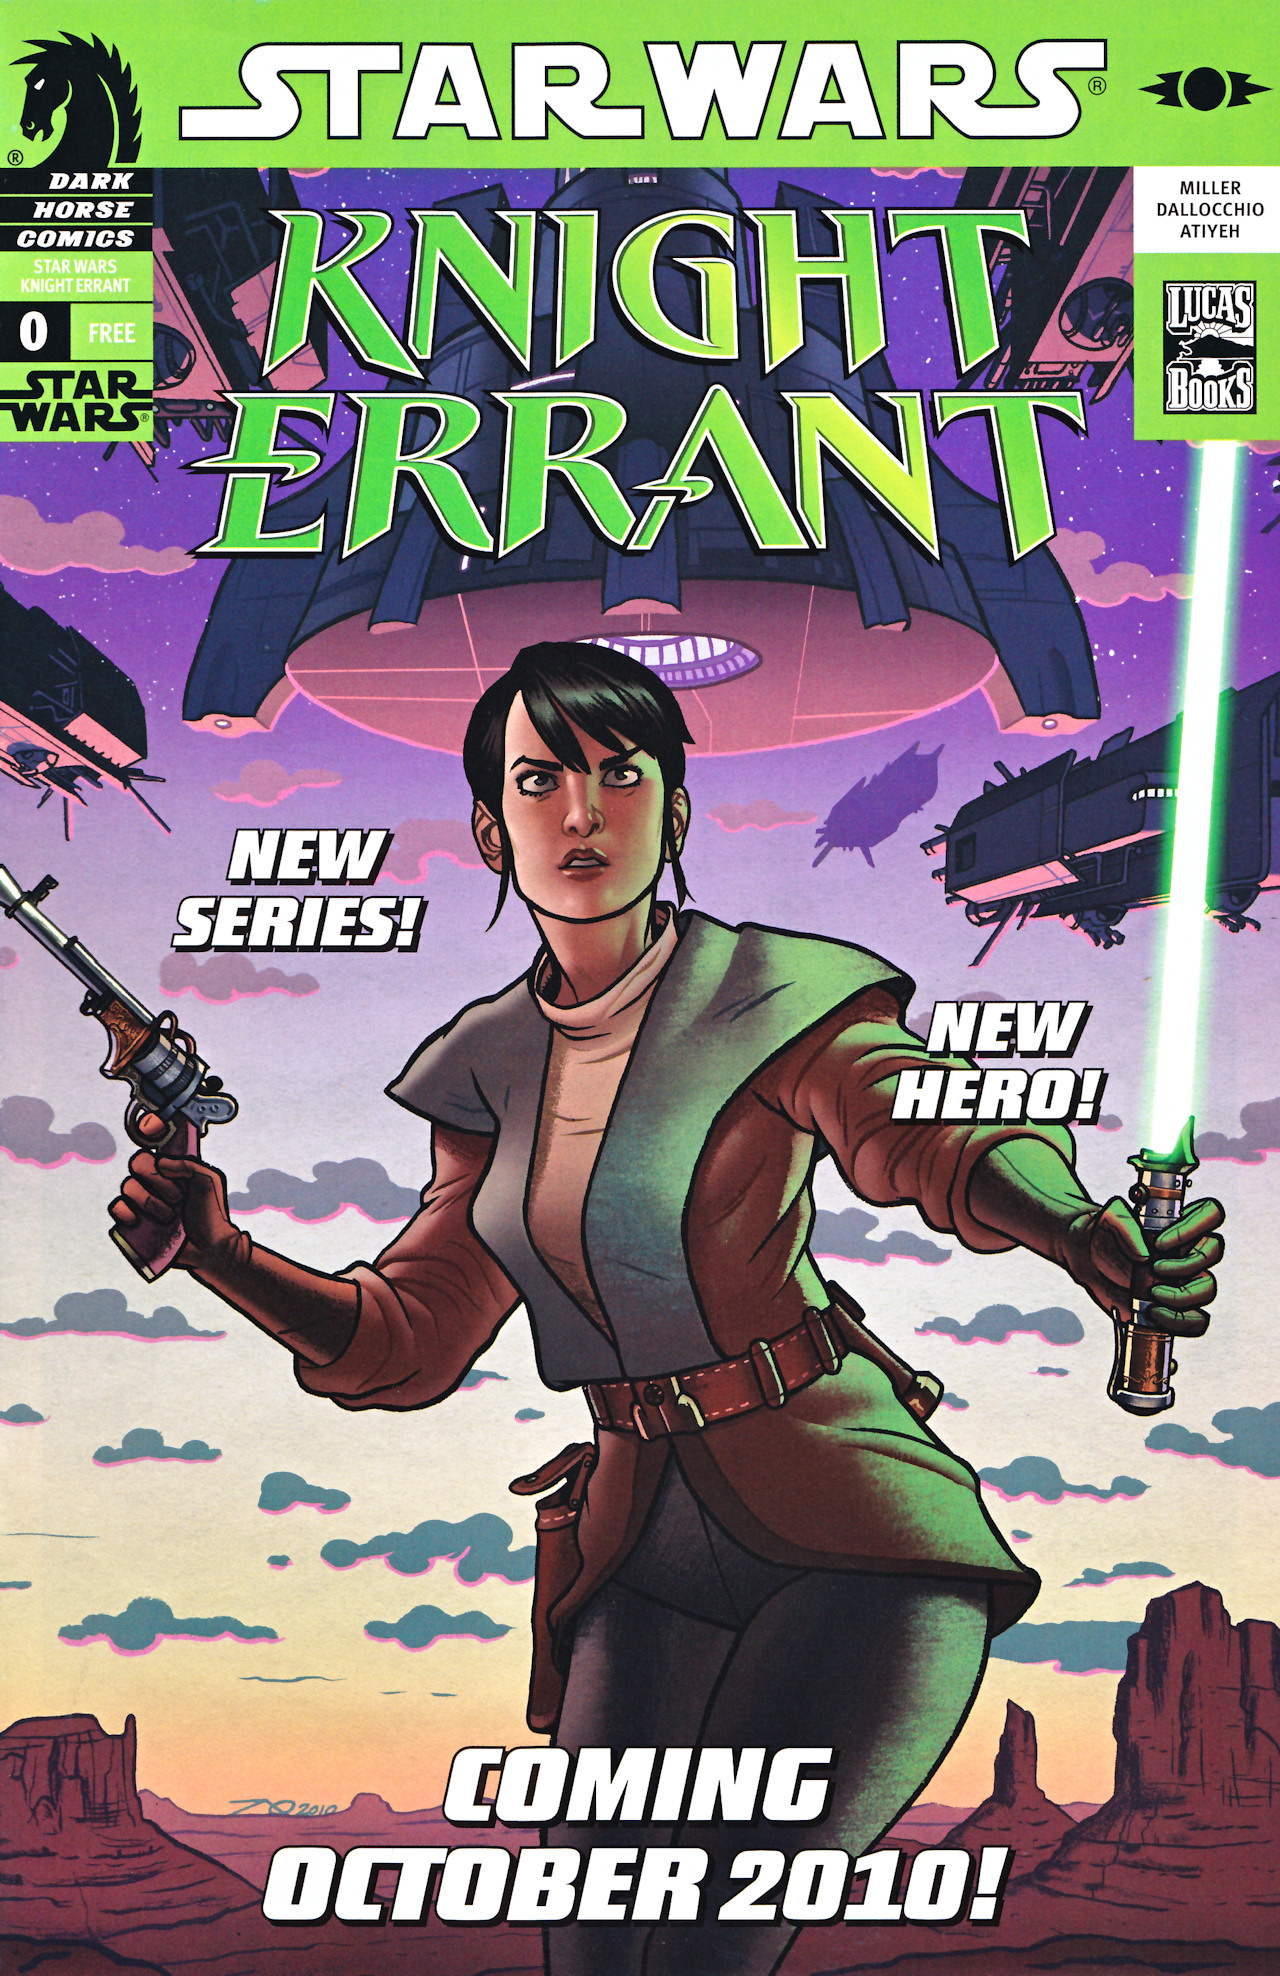 Star Wars: Knight Errant (Comic)